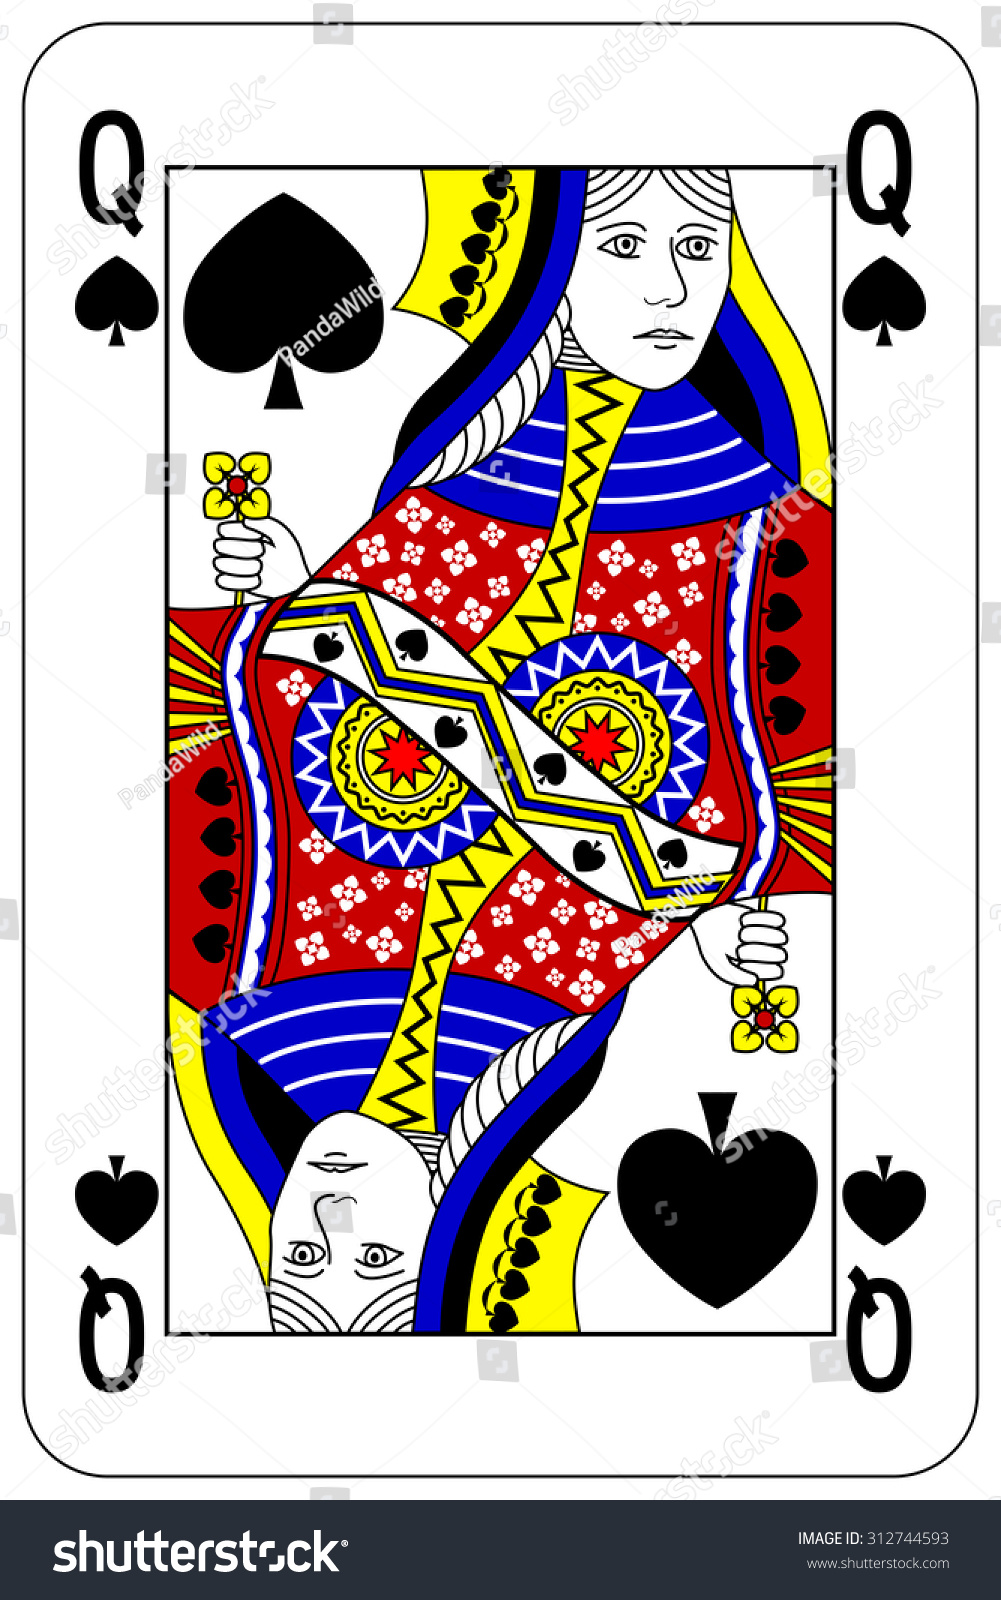 Poker Playing Card Queen Spade Stock Vector Royalty Free 312744593